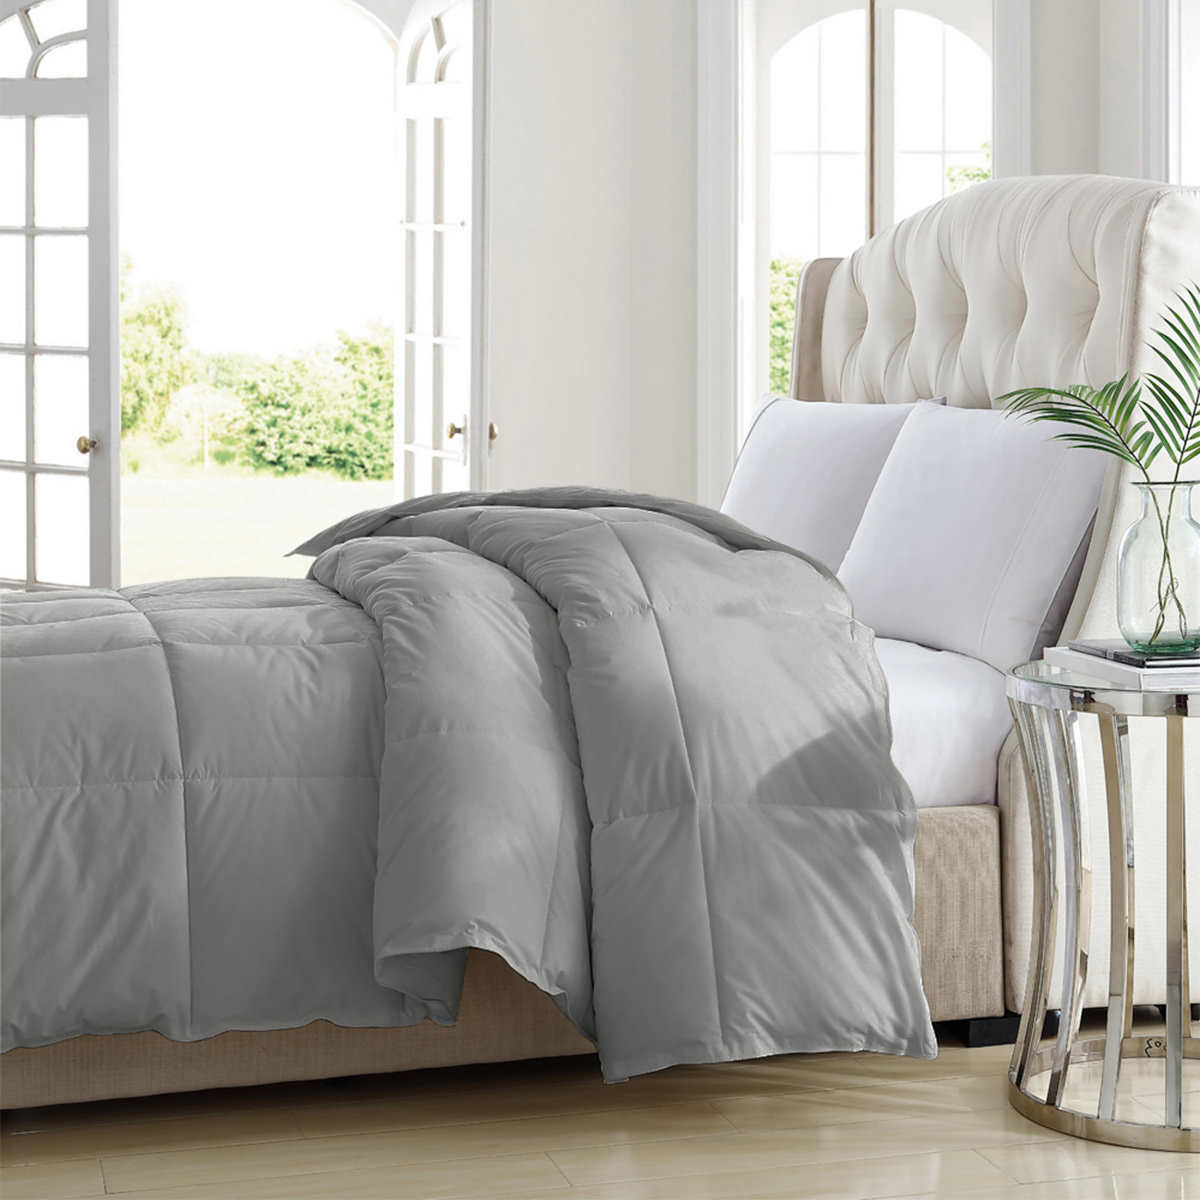 comforters costco dream haven down alternative comforter